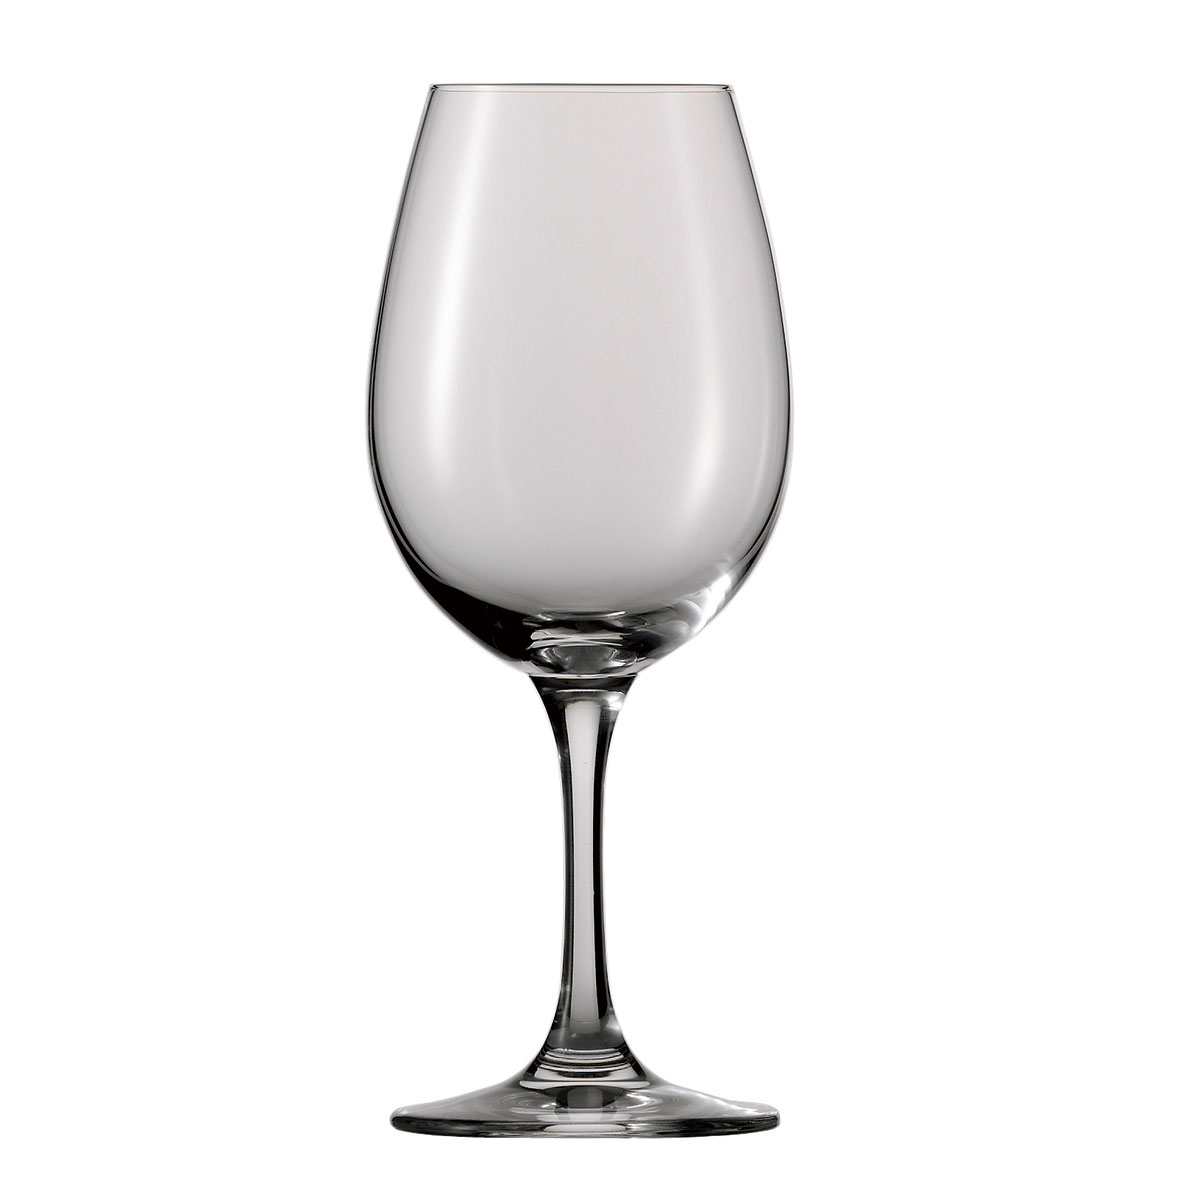 Schott Zwiesel Tritan Crystal, Bar Special Sensus Wine Tasting Glass, Single